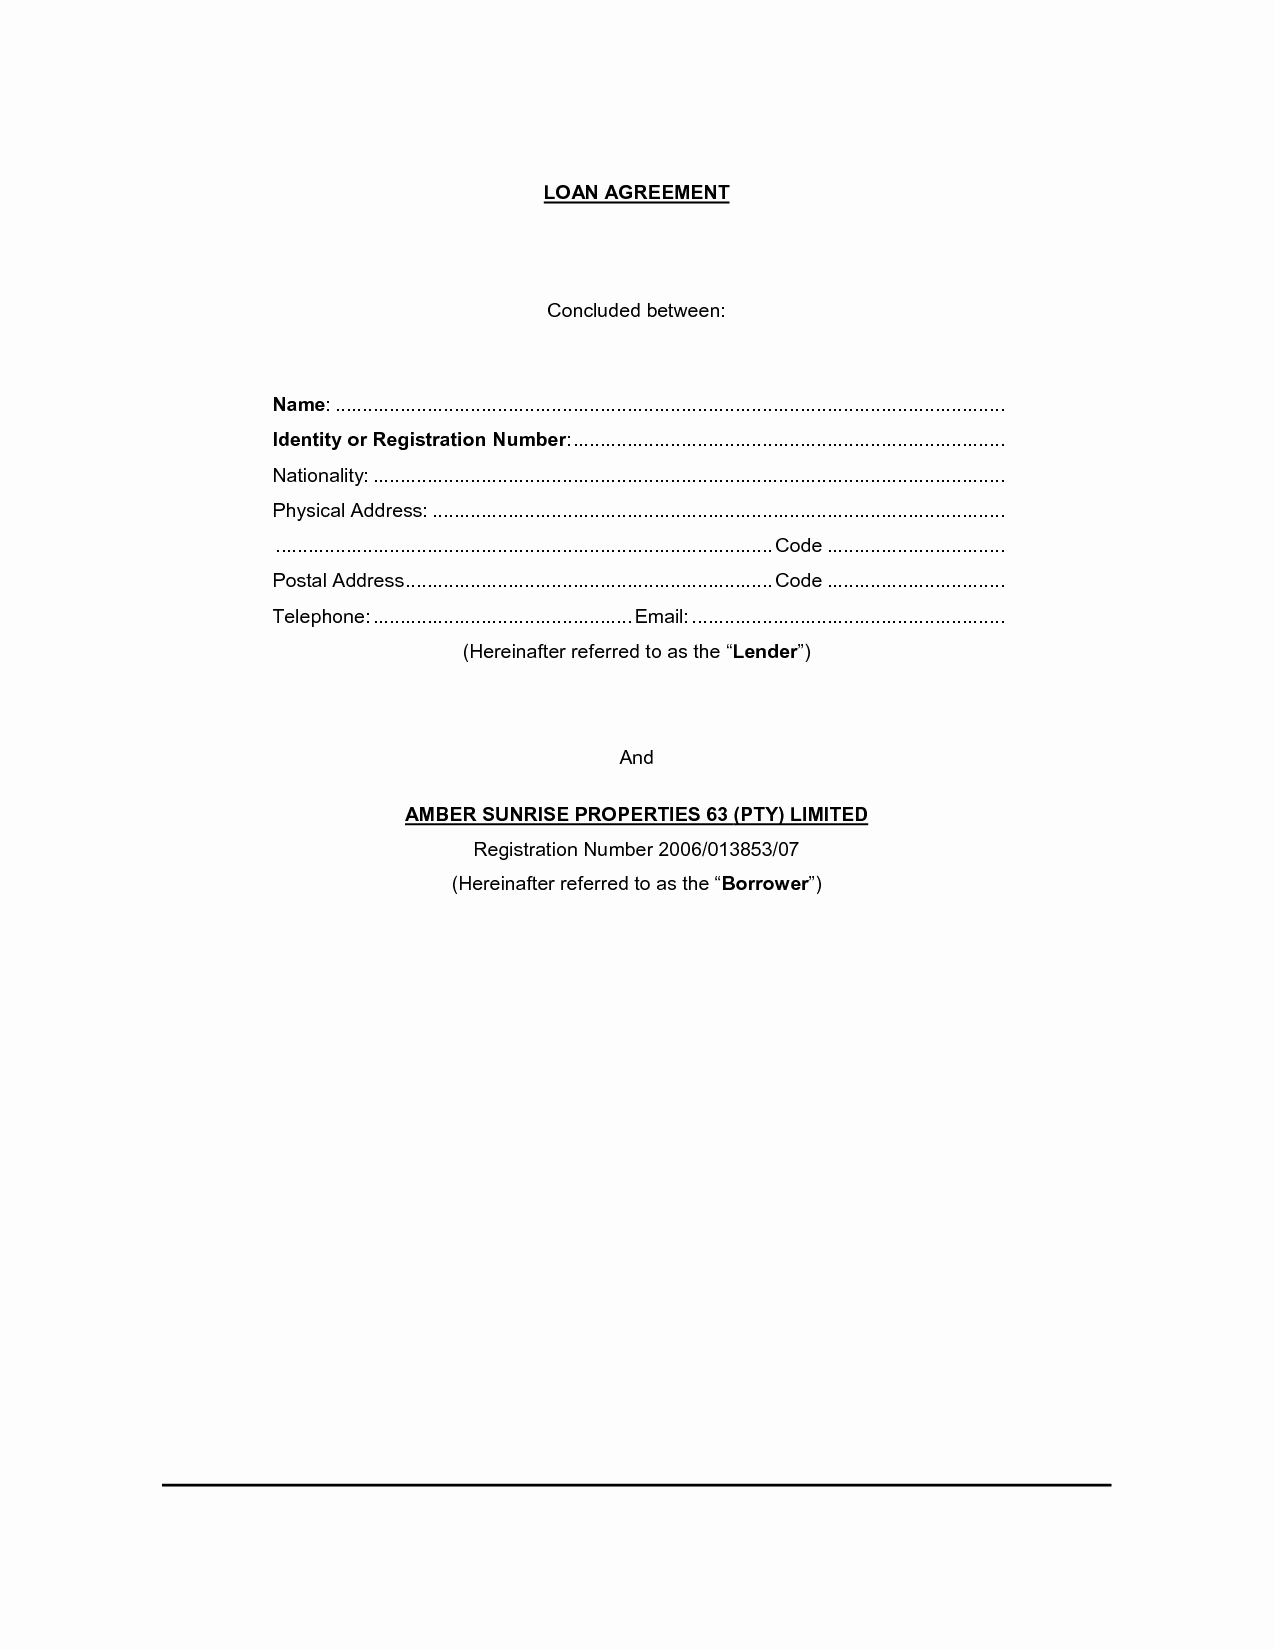 Blank Loan Agreement New Free Printable Loan Contract Template form Generic